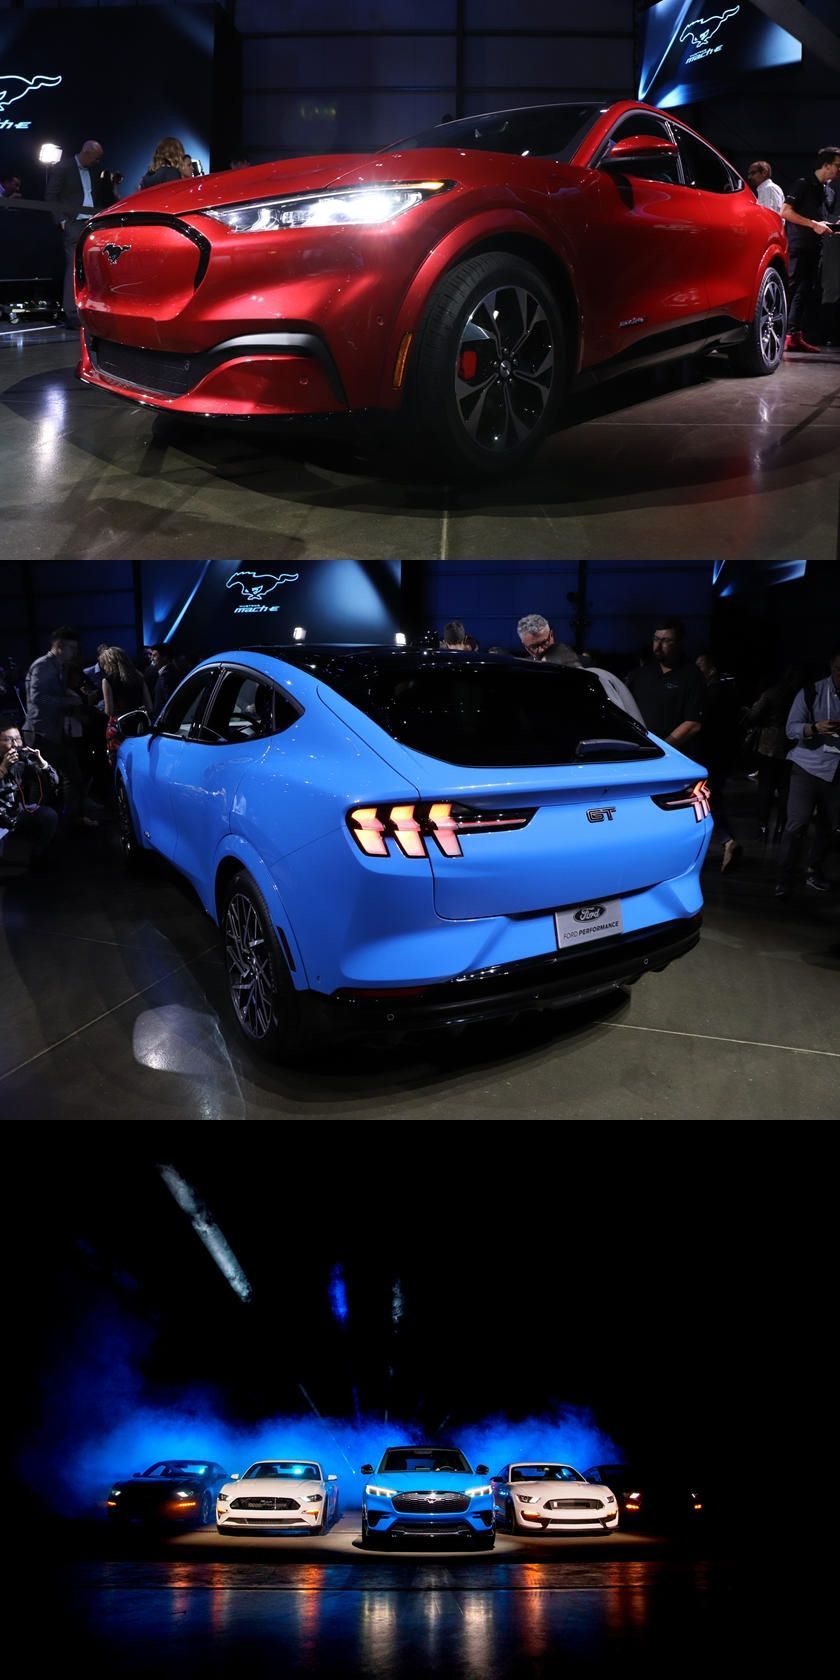 Ford Mustang Mach E Engineer Reveals Secret Details In 2020 Ford Mustang Mustang Pony Car